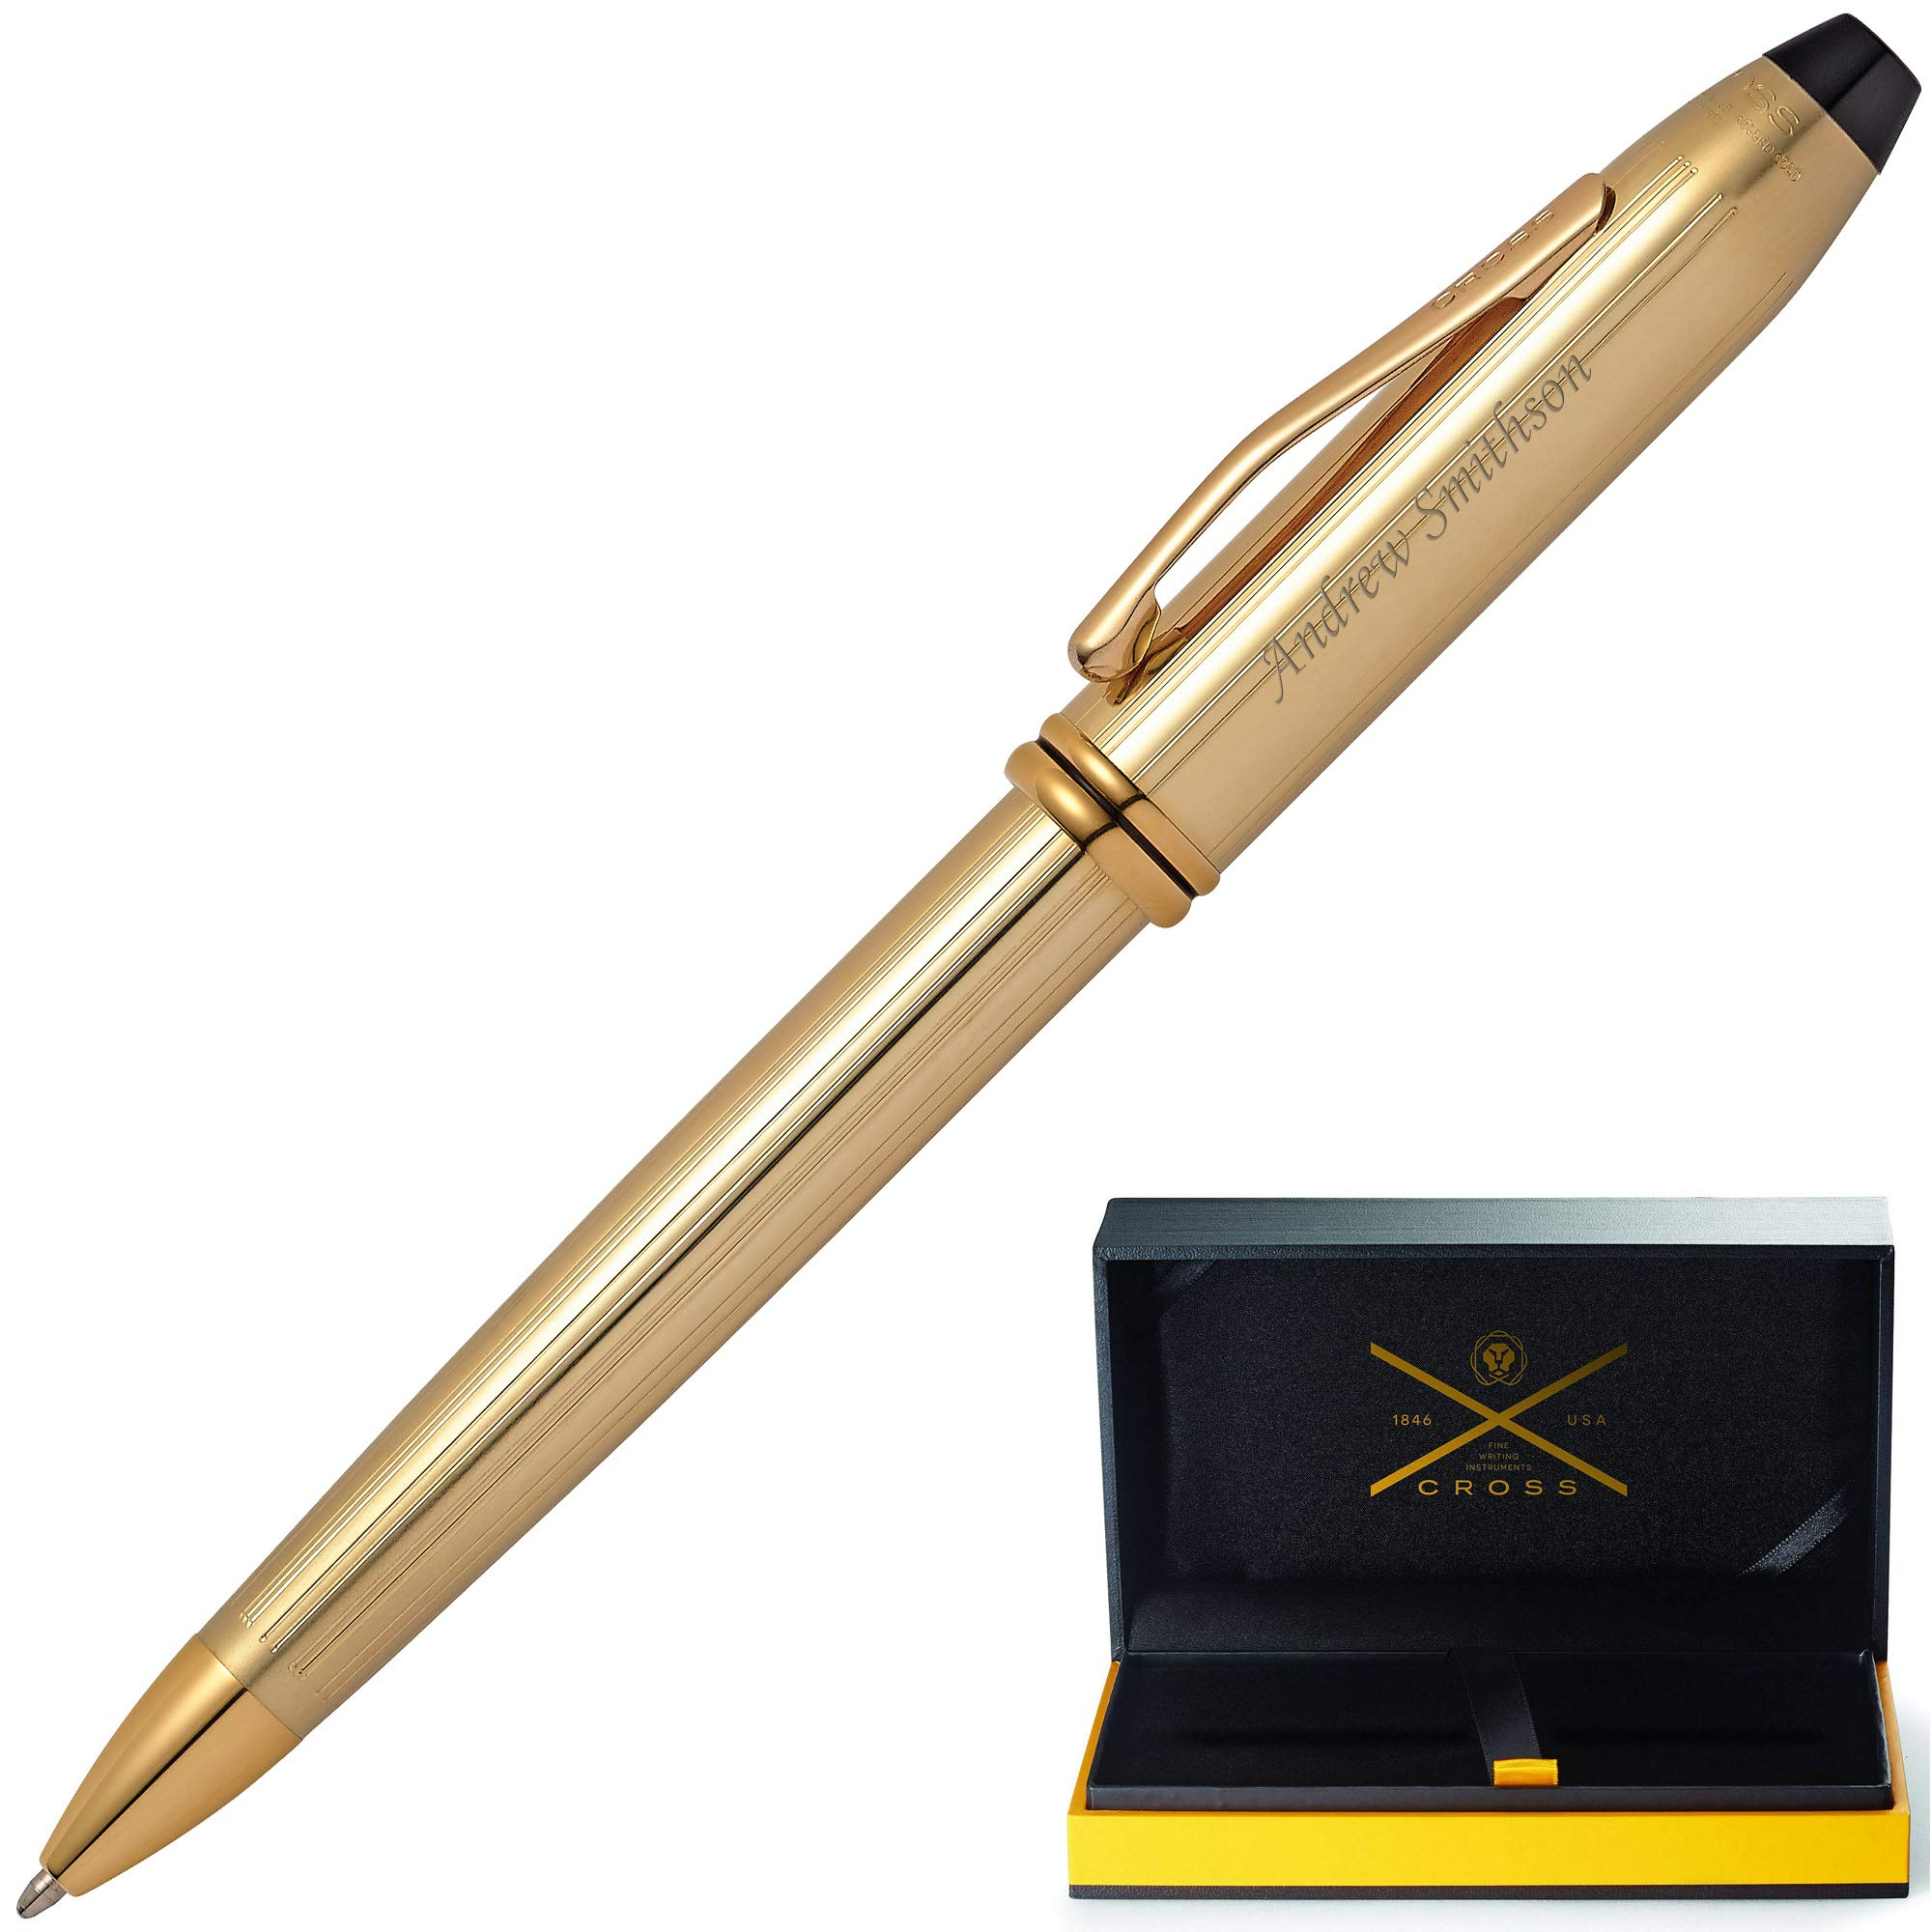 Gold Cross Pen | Engraved/Personalized Cross 10KT Gold Plated Townsend Ballpoint Pen with Case. Custom Engraved Fast